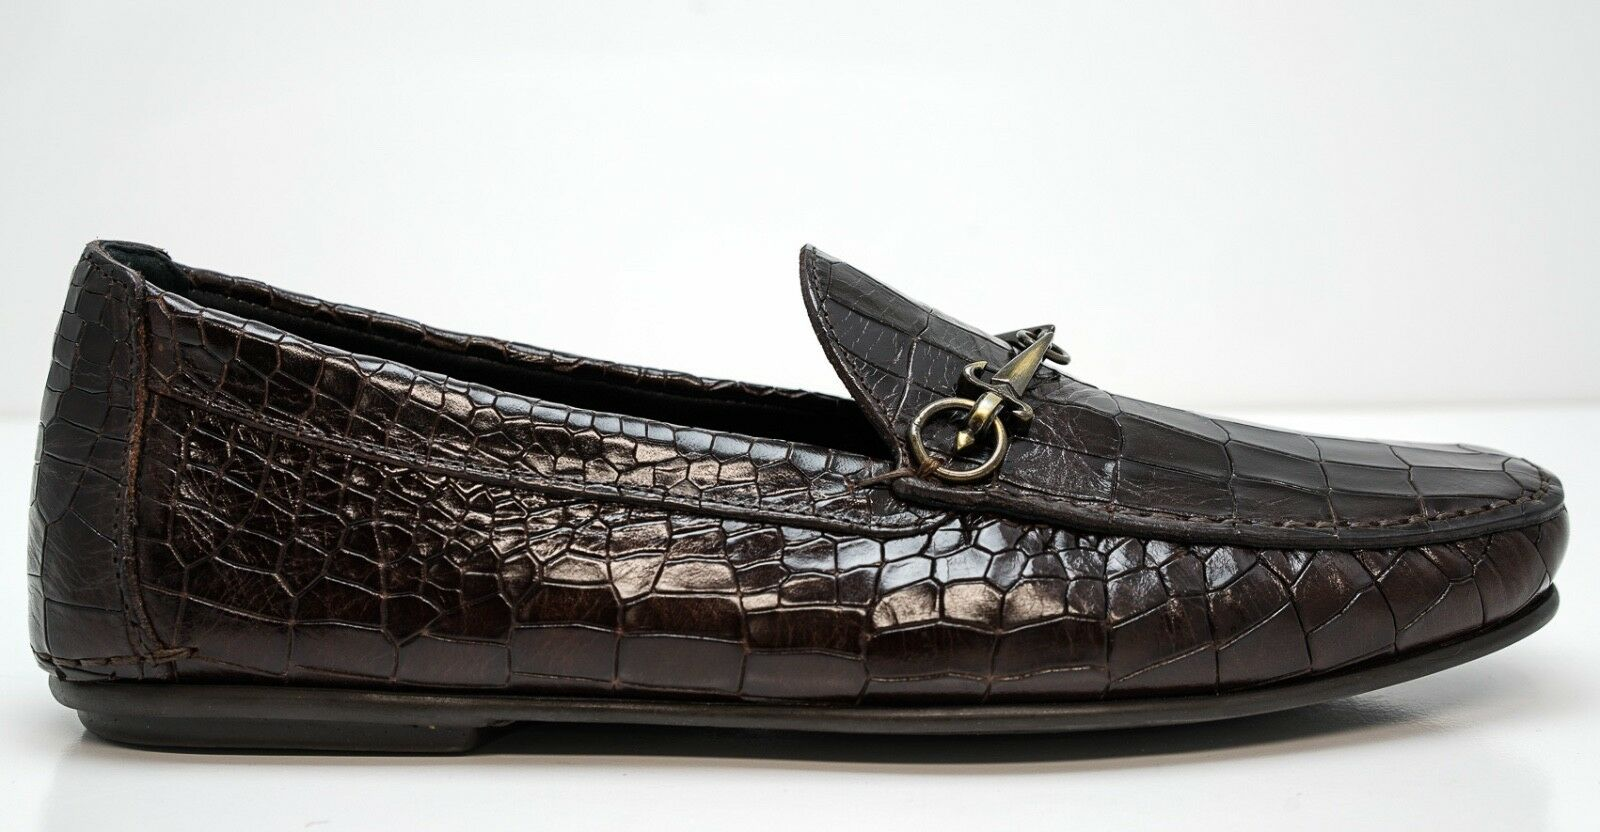 New in Box Cesare Paciotti Men's Brown Cocco Croc Croc Croc Print Leather Moccasin 49005 afb2ca